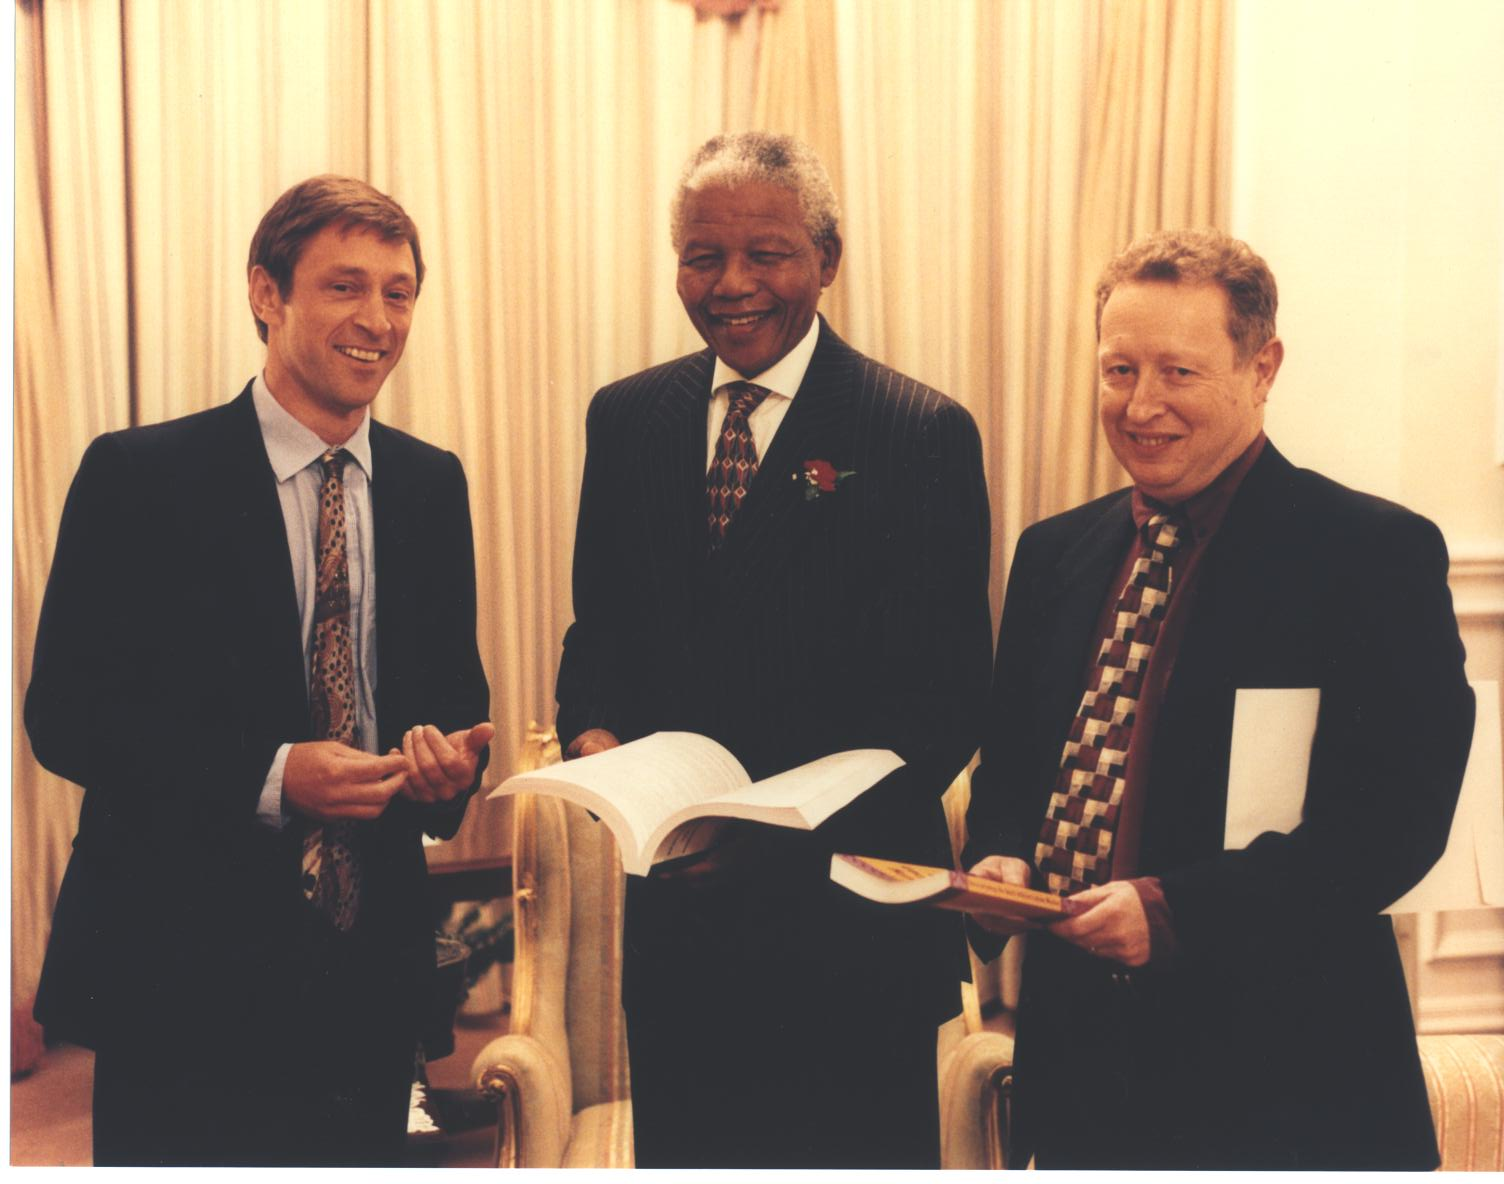 With President Nelson Mandela and David Lewis, 1996